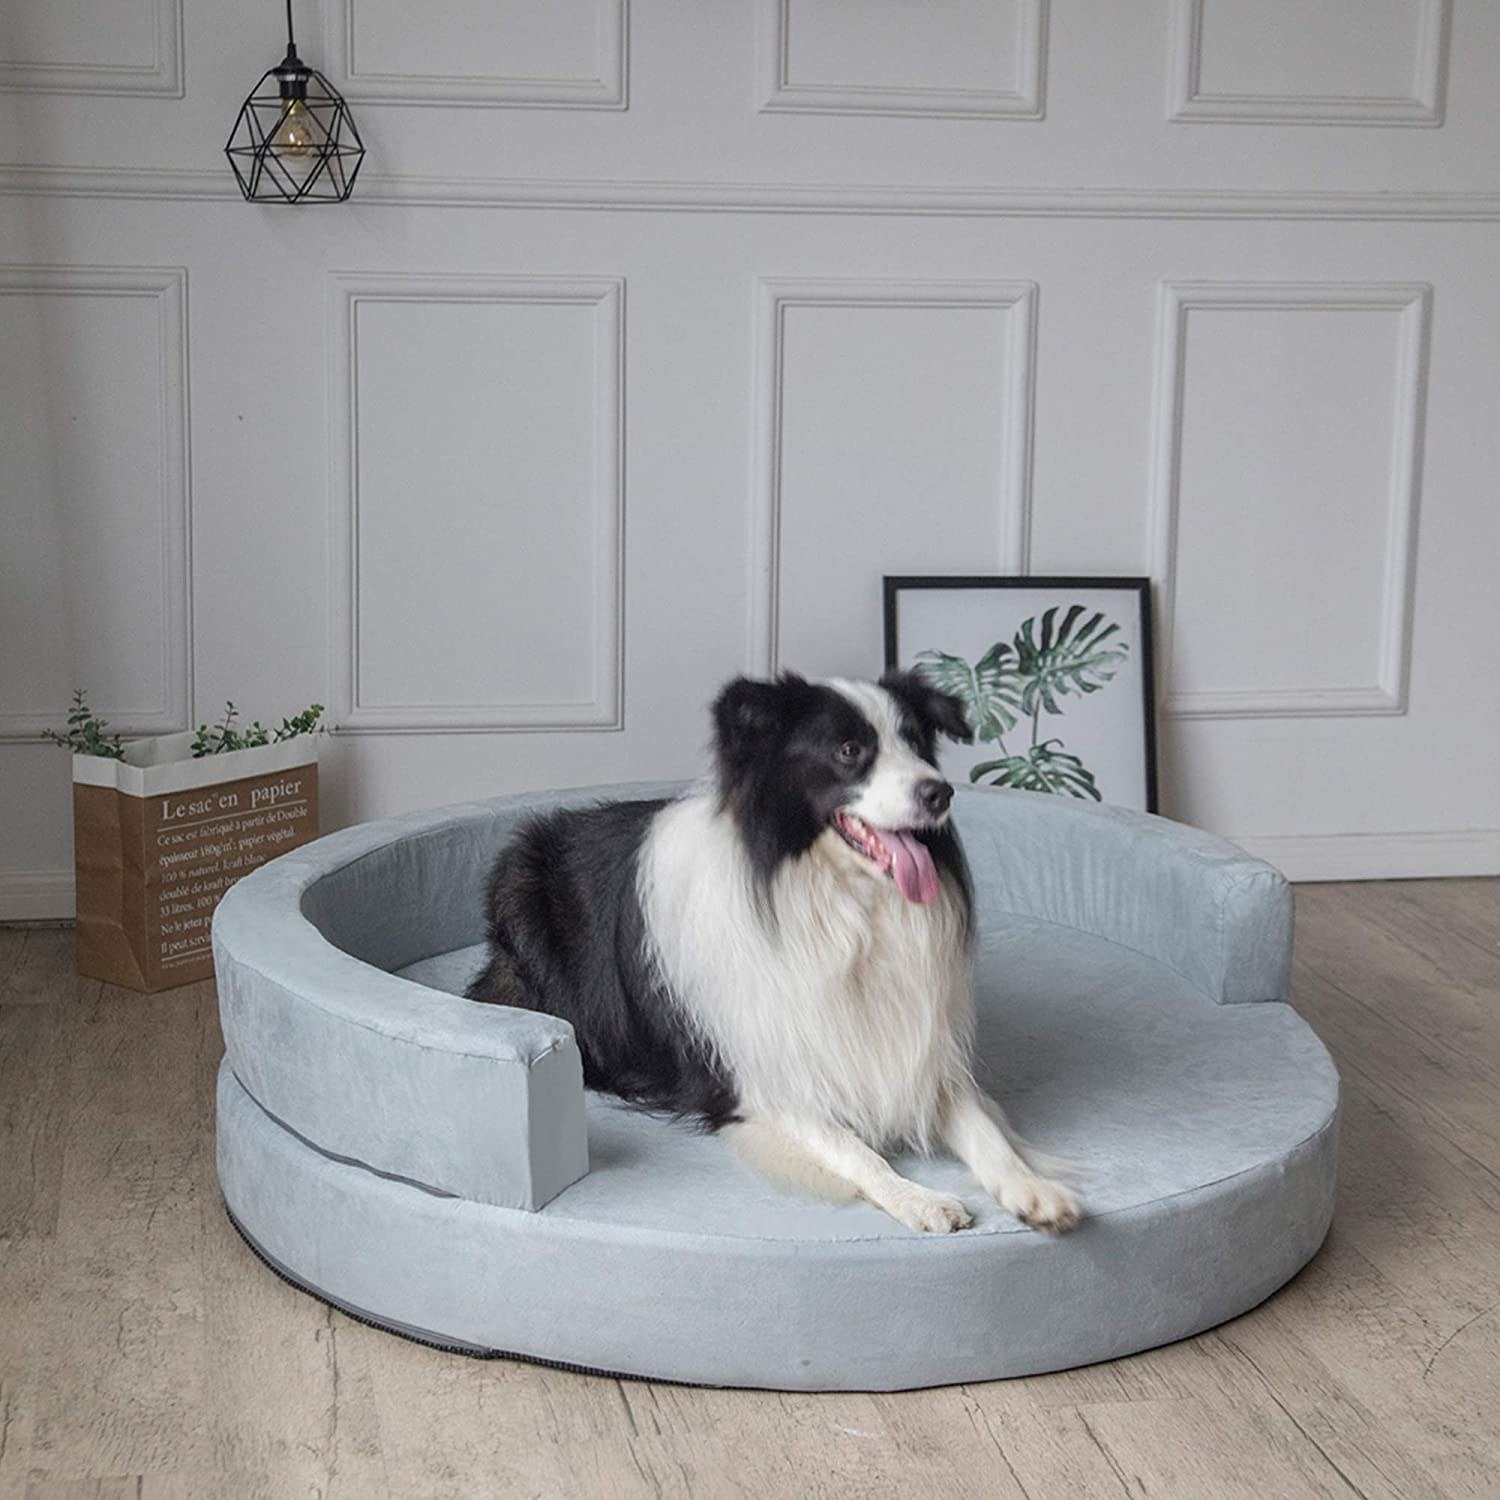 Dog laying in the stylish, circular bed